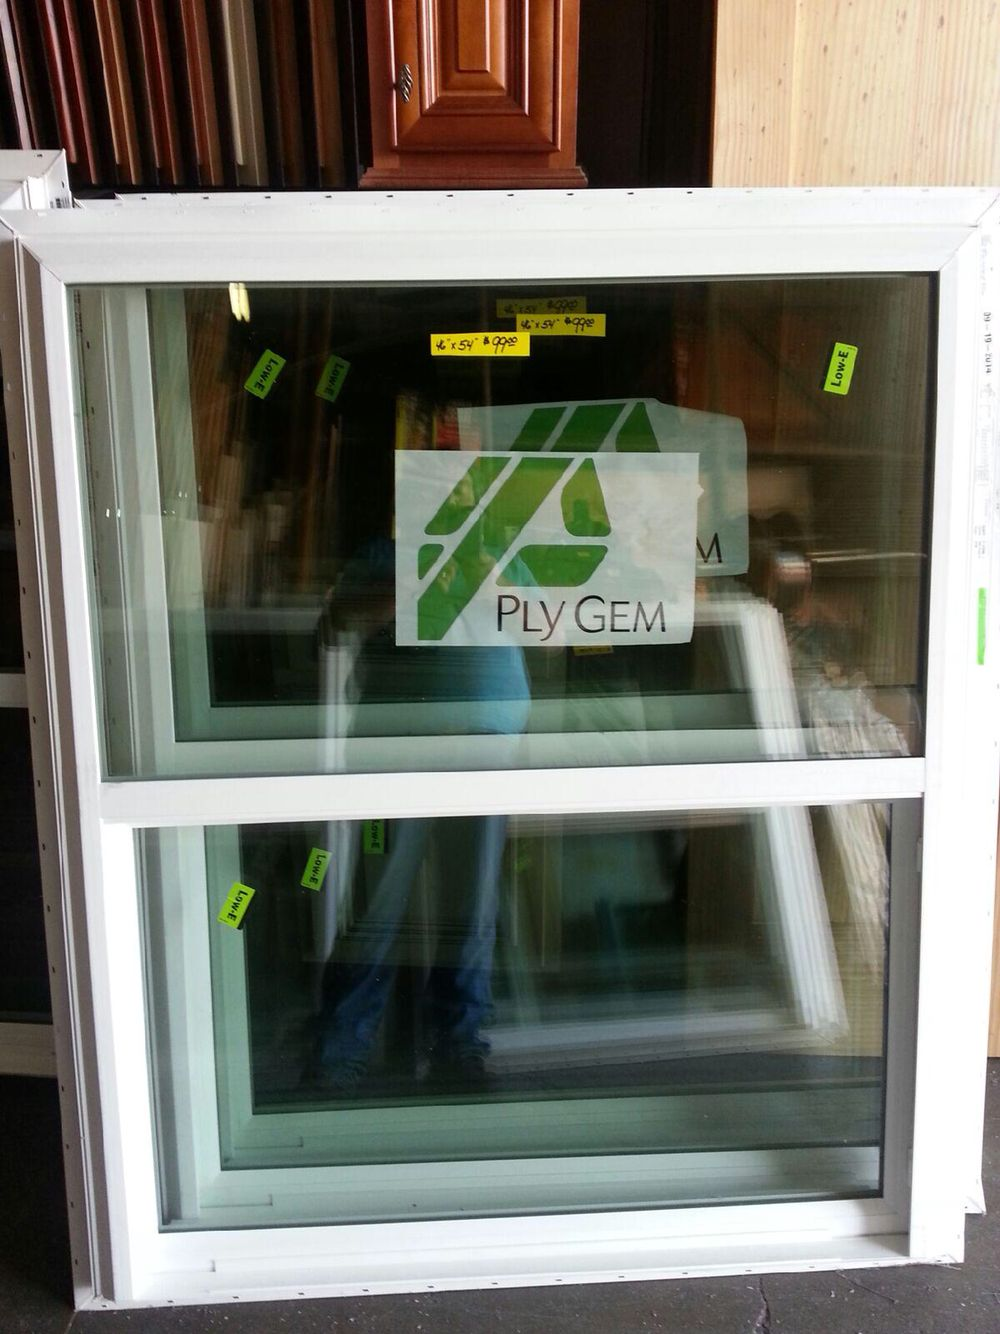 46 X 54 Single Hung Vinyl Windows From Plygem Are In Stock And Only 99 While Supplies Last Single Hung Vinyl Windows Window Vinyl Vinyl Replacement Windows